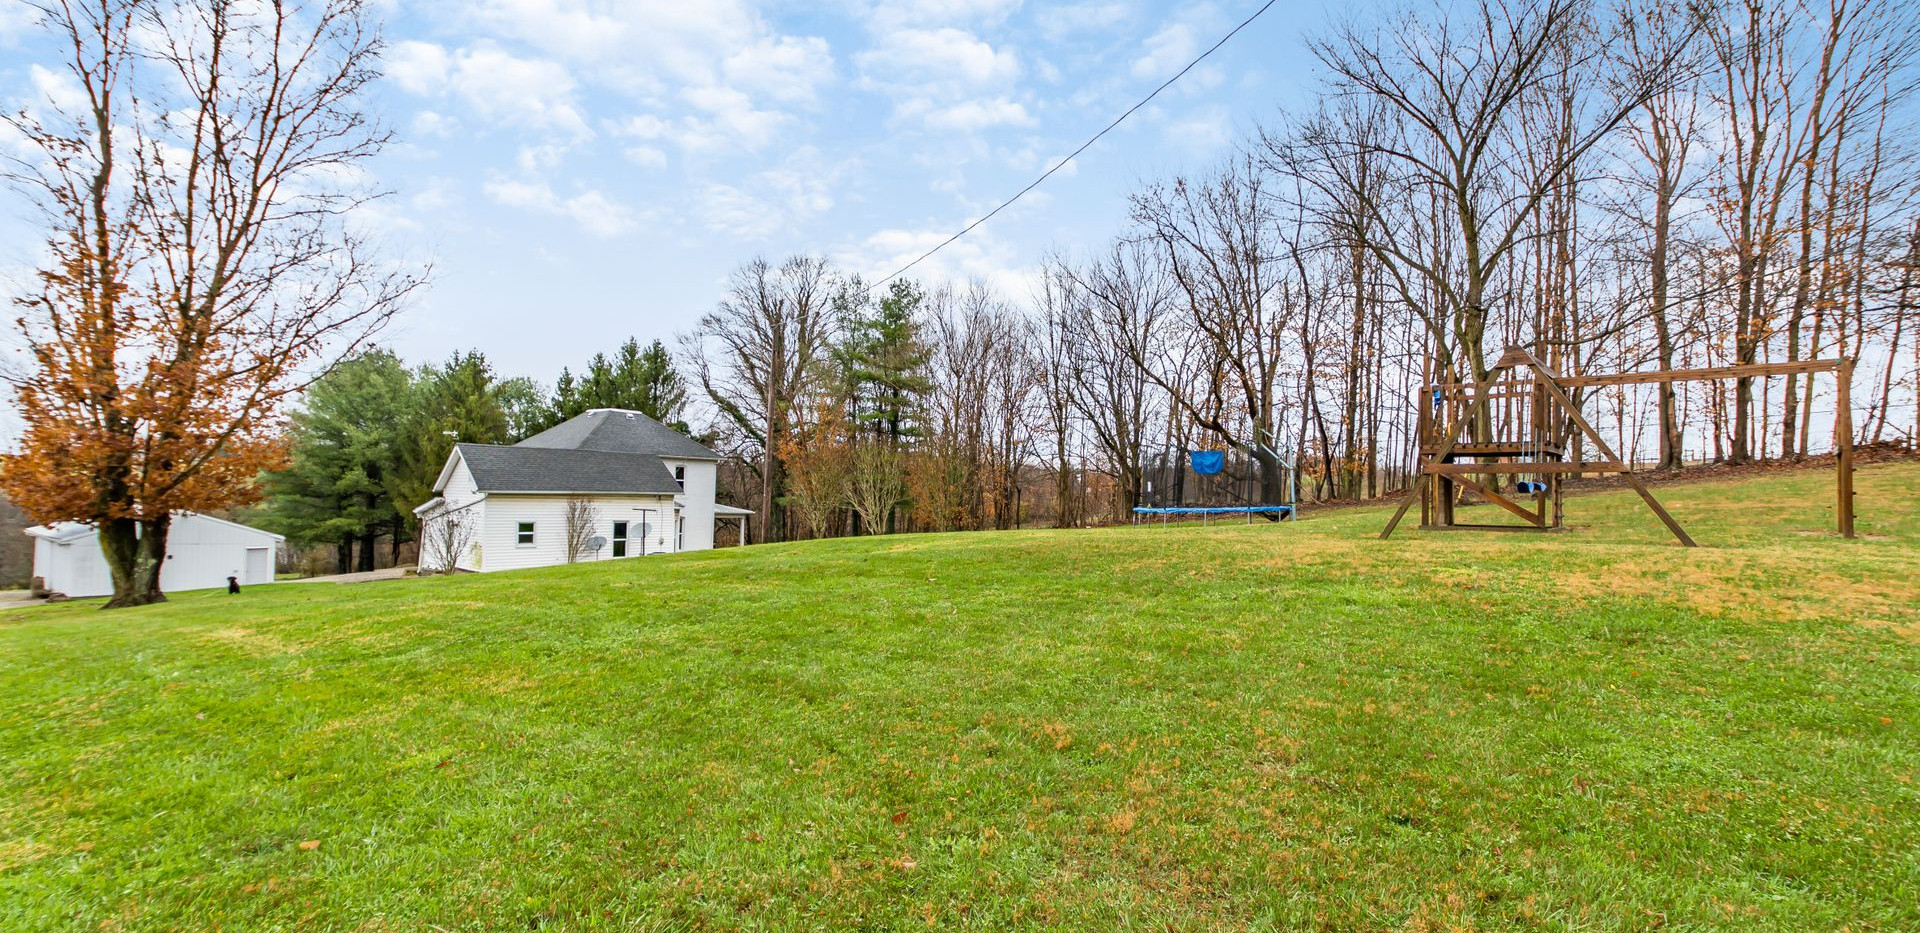 [041] 10563 Wesley Chapel Rd, Mt Perry,